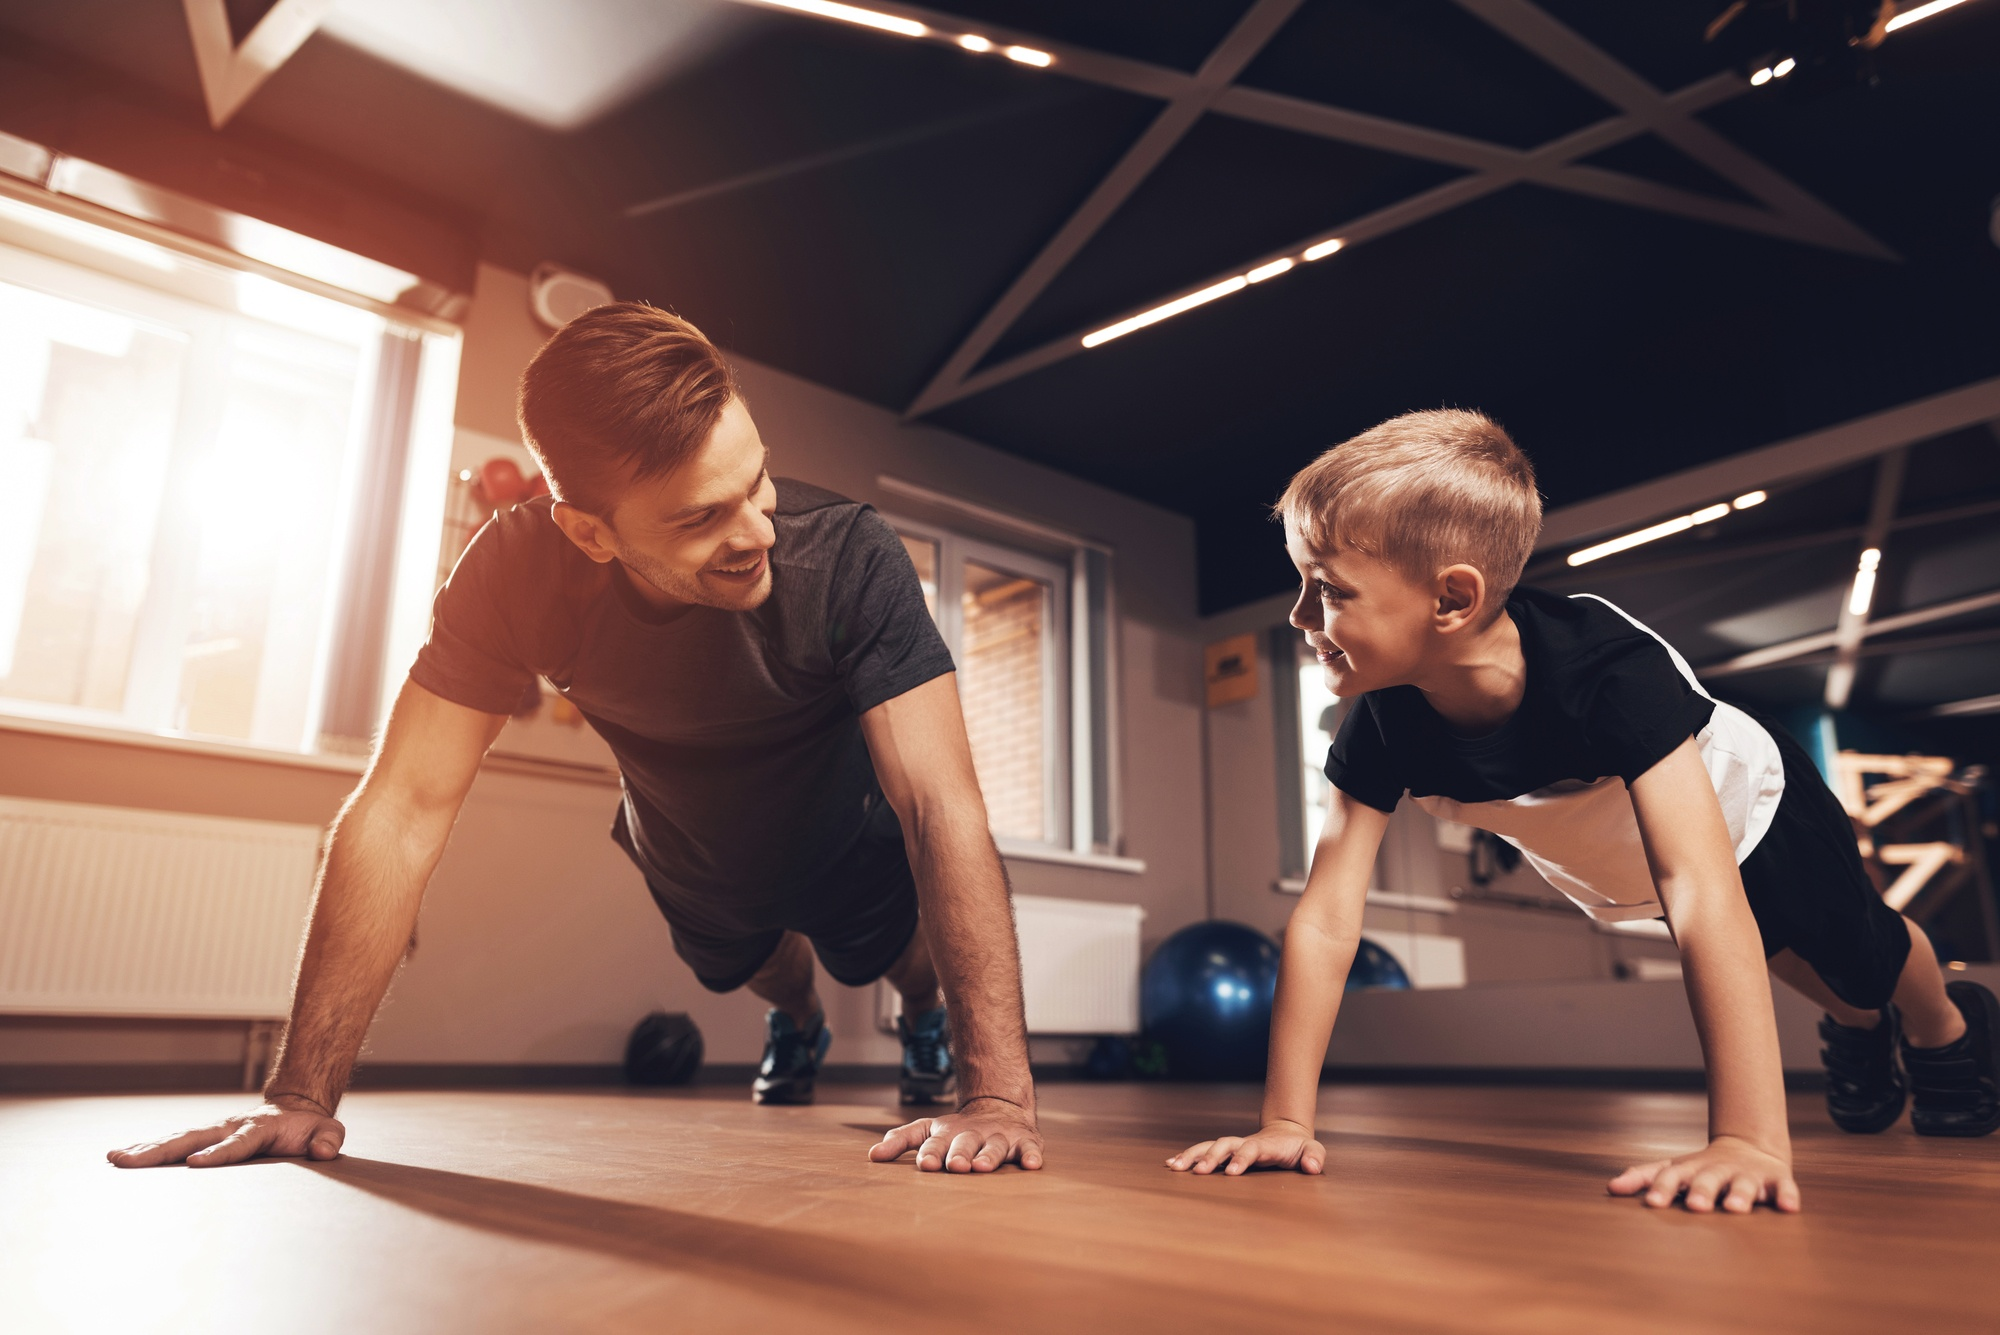 children's physical activity can lead to smarter kids